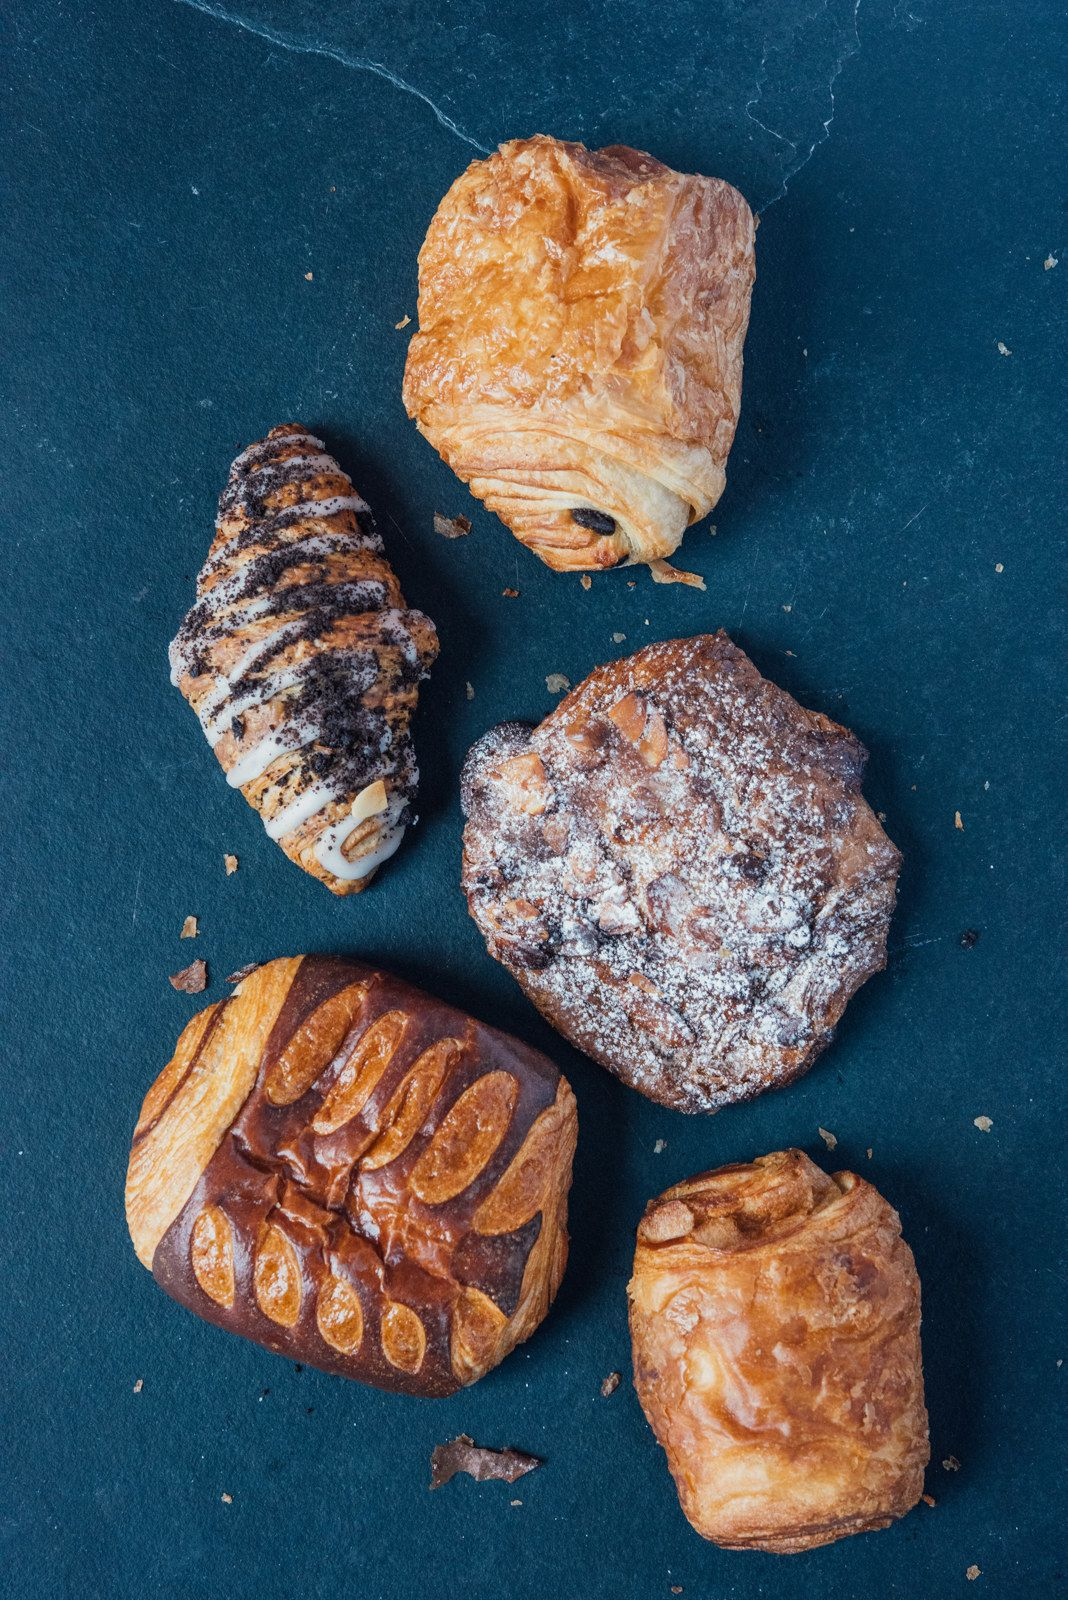 A French Person's Quest To Find The Best Chocolate Croissant In NYC